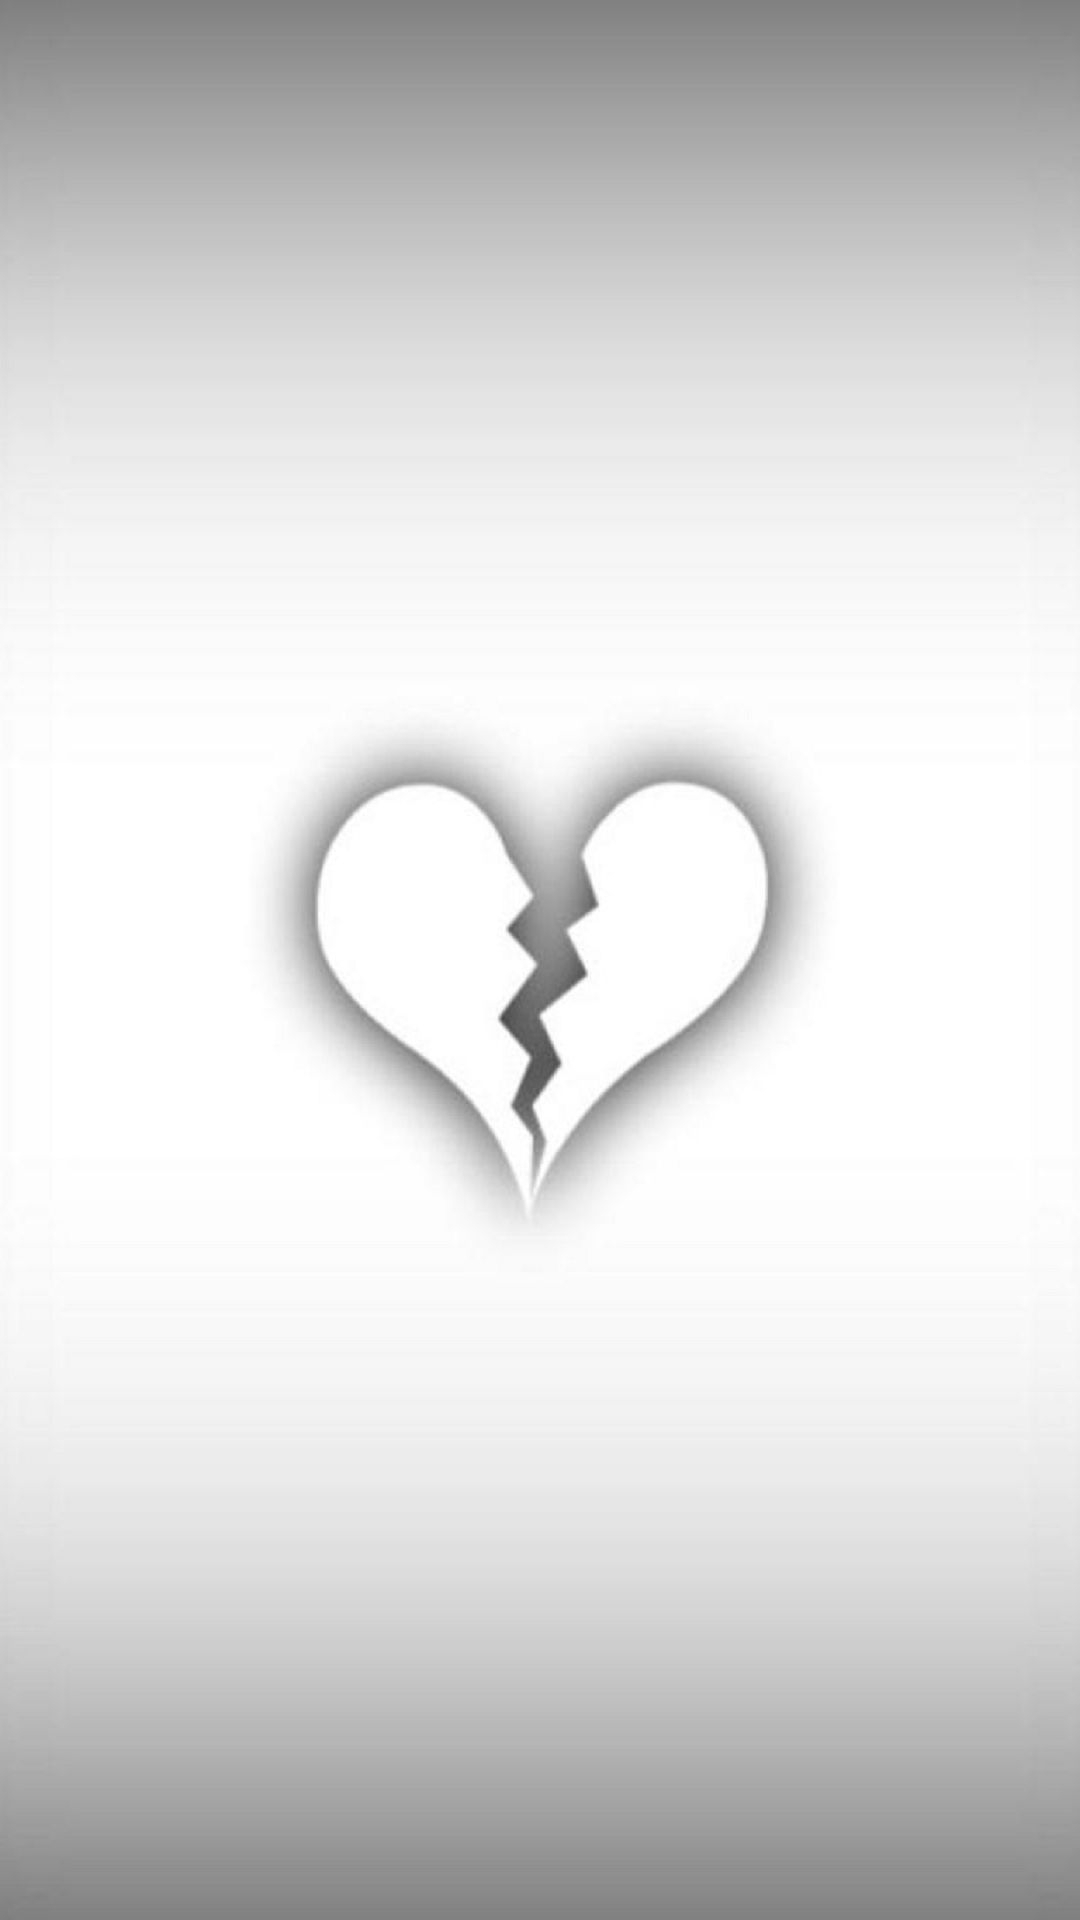 10 Most Popular Broken Heart Wallpaper For Iphone FULL HD 1920×1080 For PC Desktop